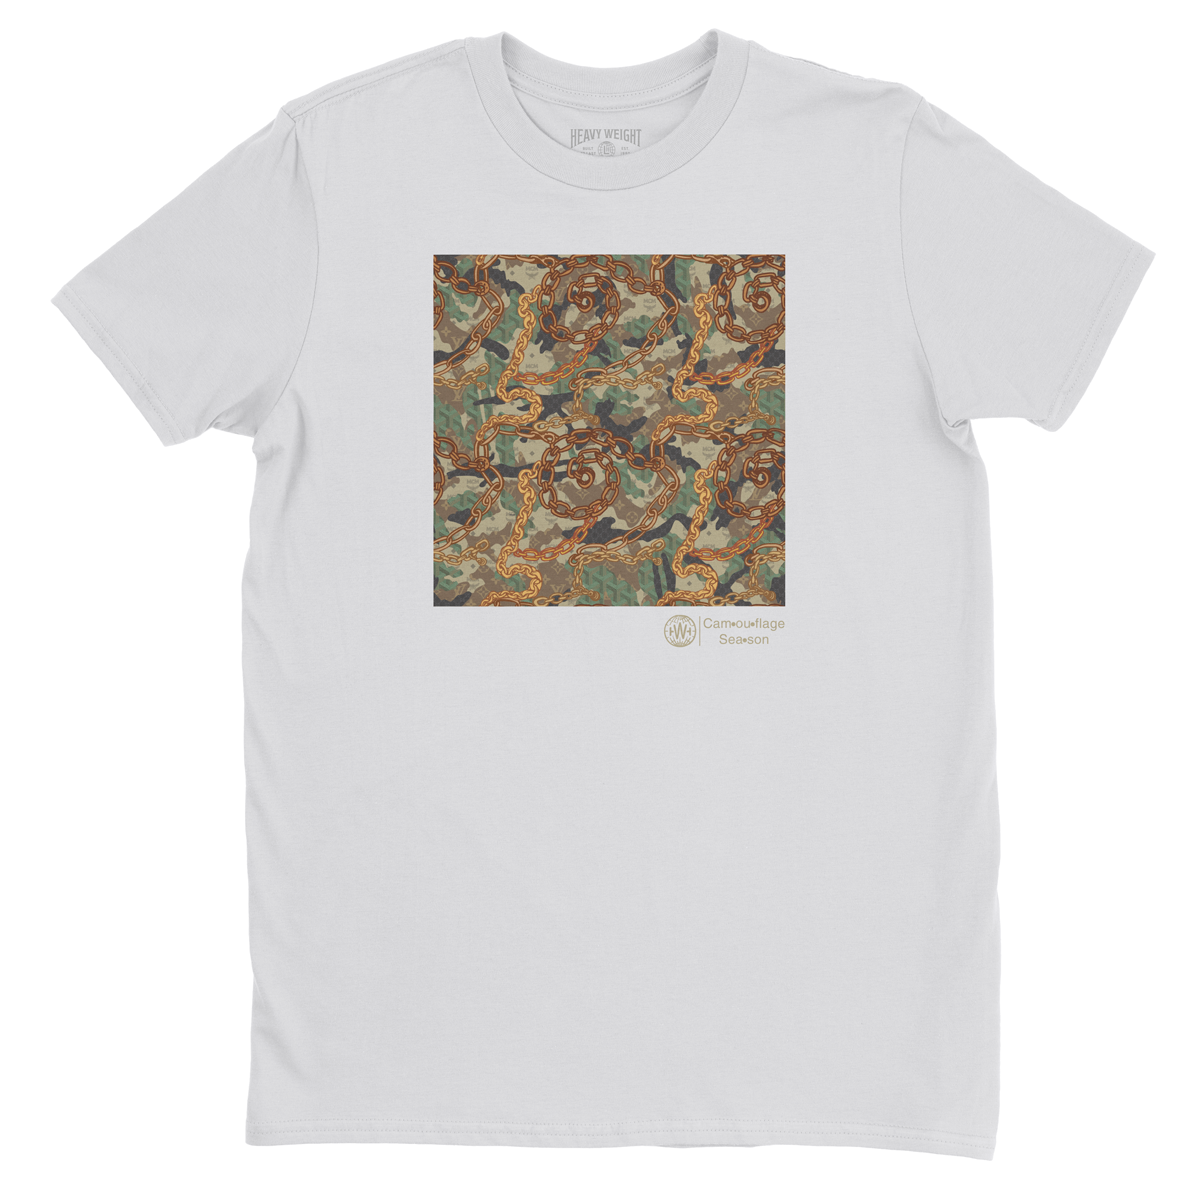 Camoseason Chain Gang tee